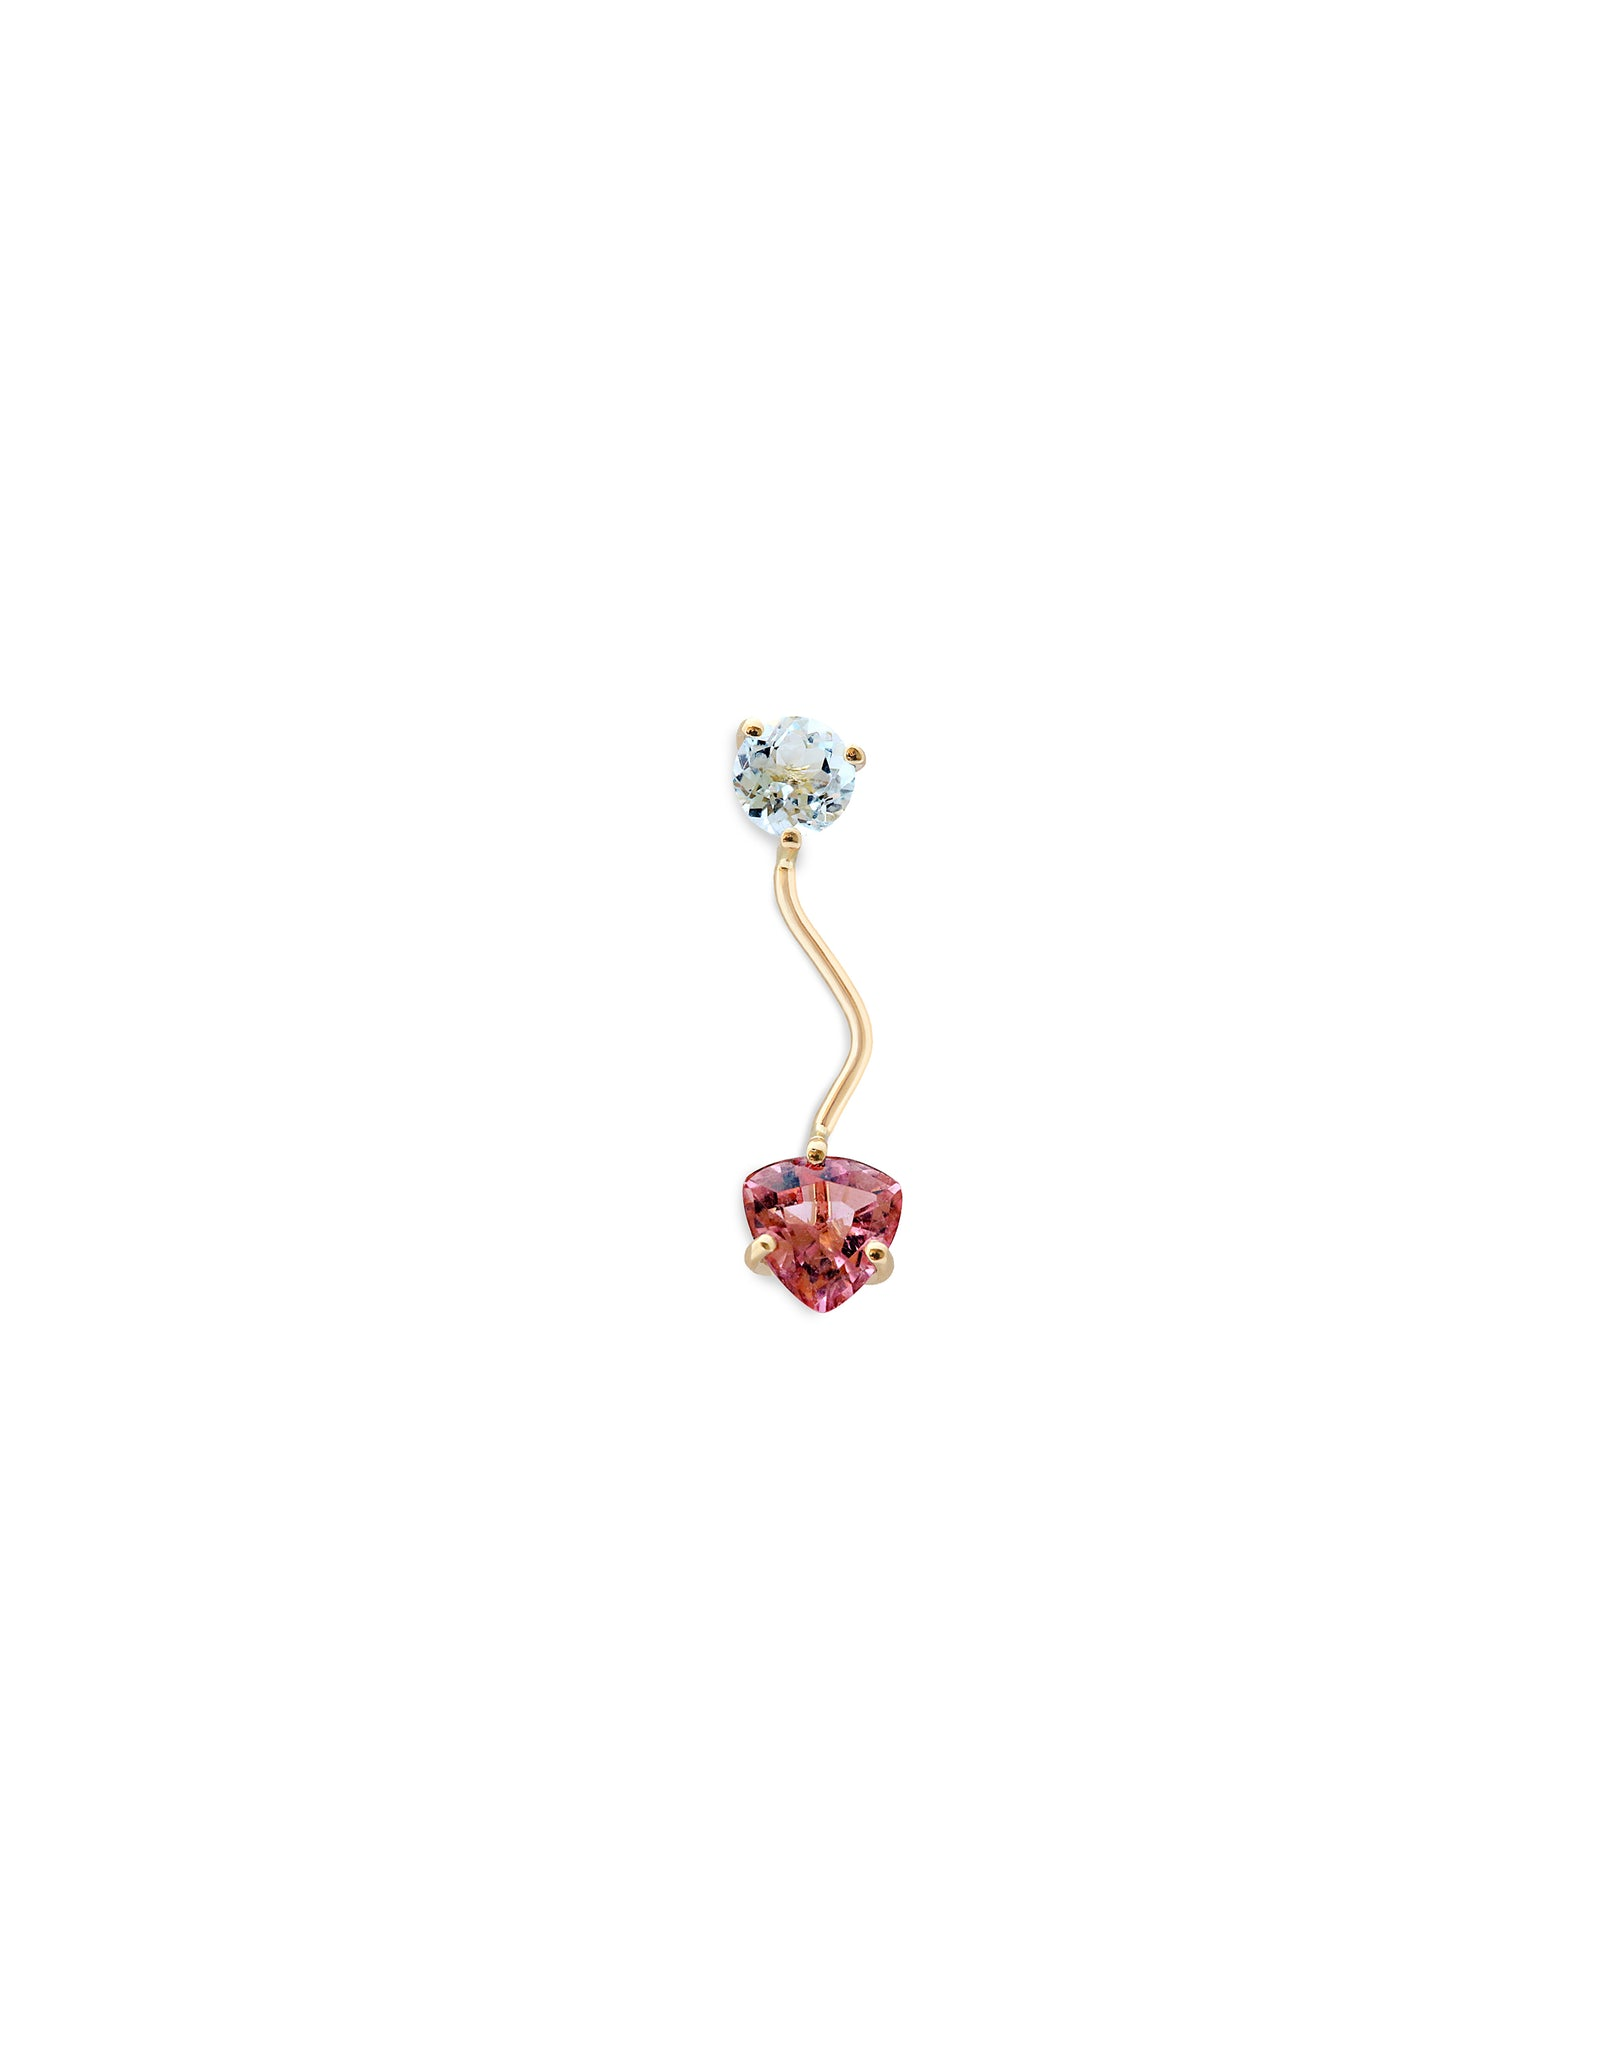 Earring 18K gold tourmaline and topaz - Gioia earring tourmaline and topaz - Nayestones